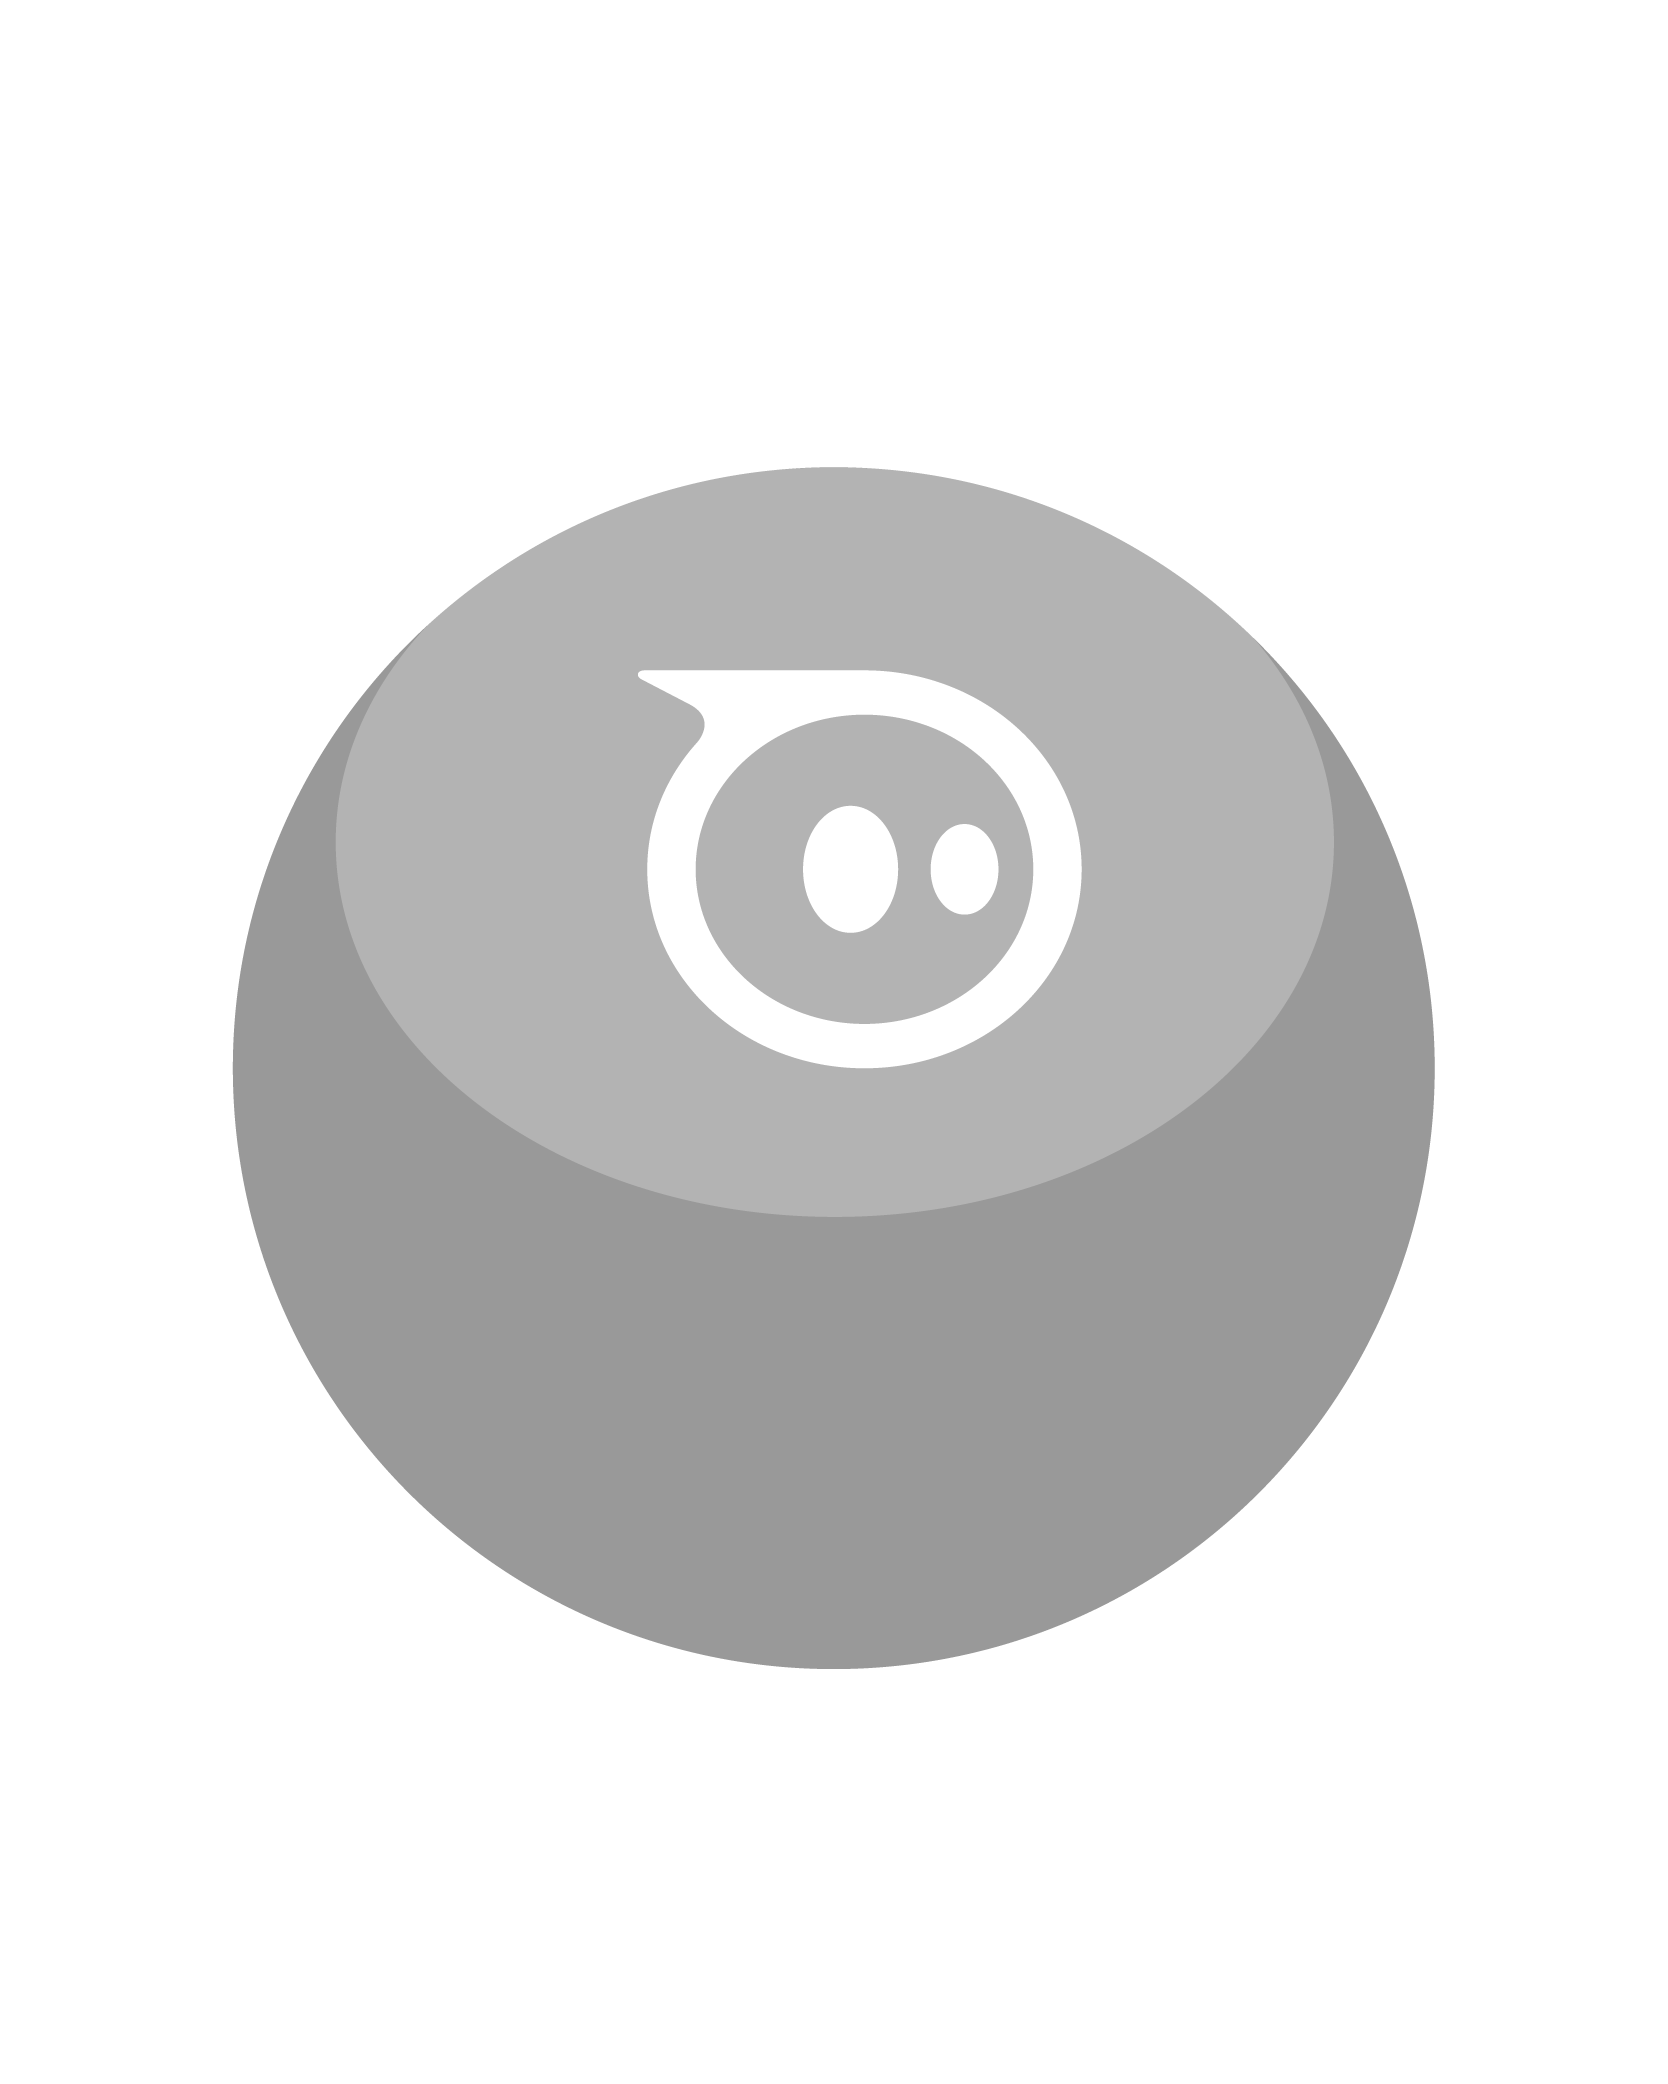 Sphero - Sphero Support and Knowledge Base